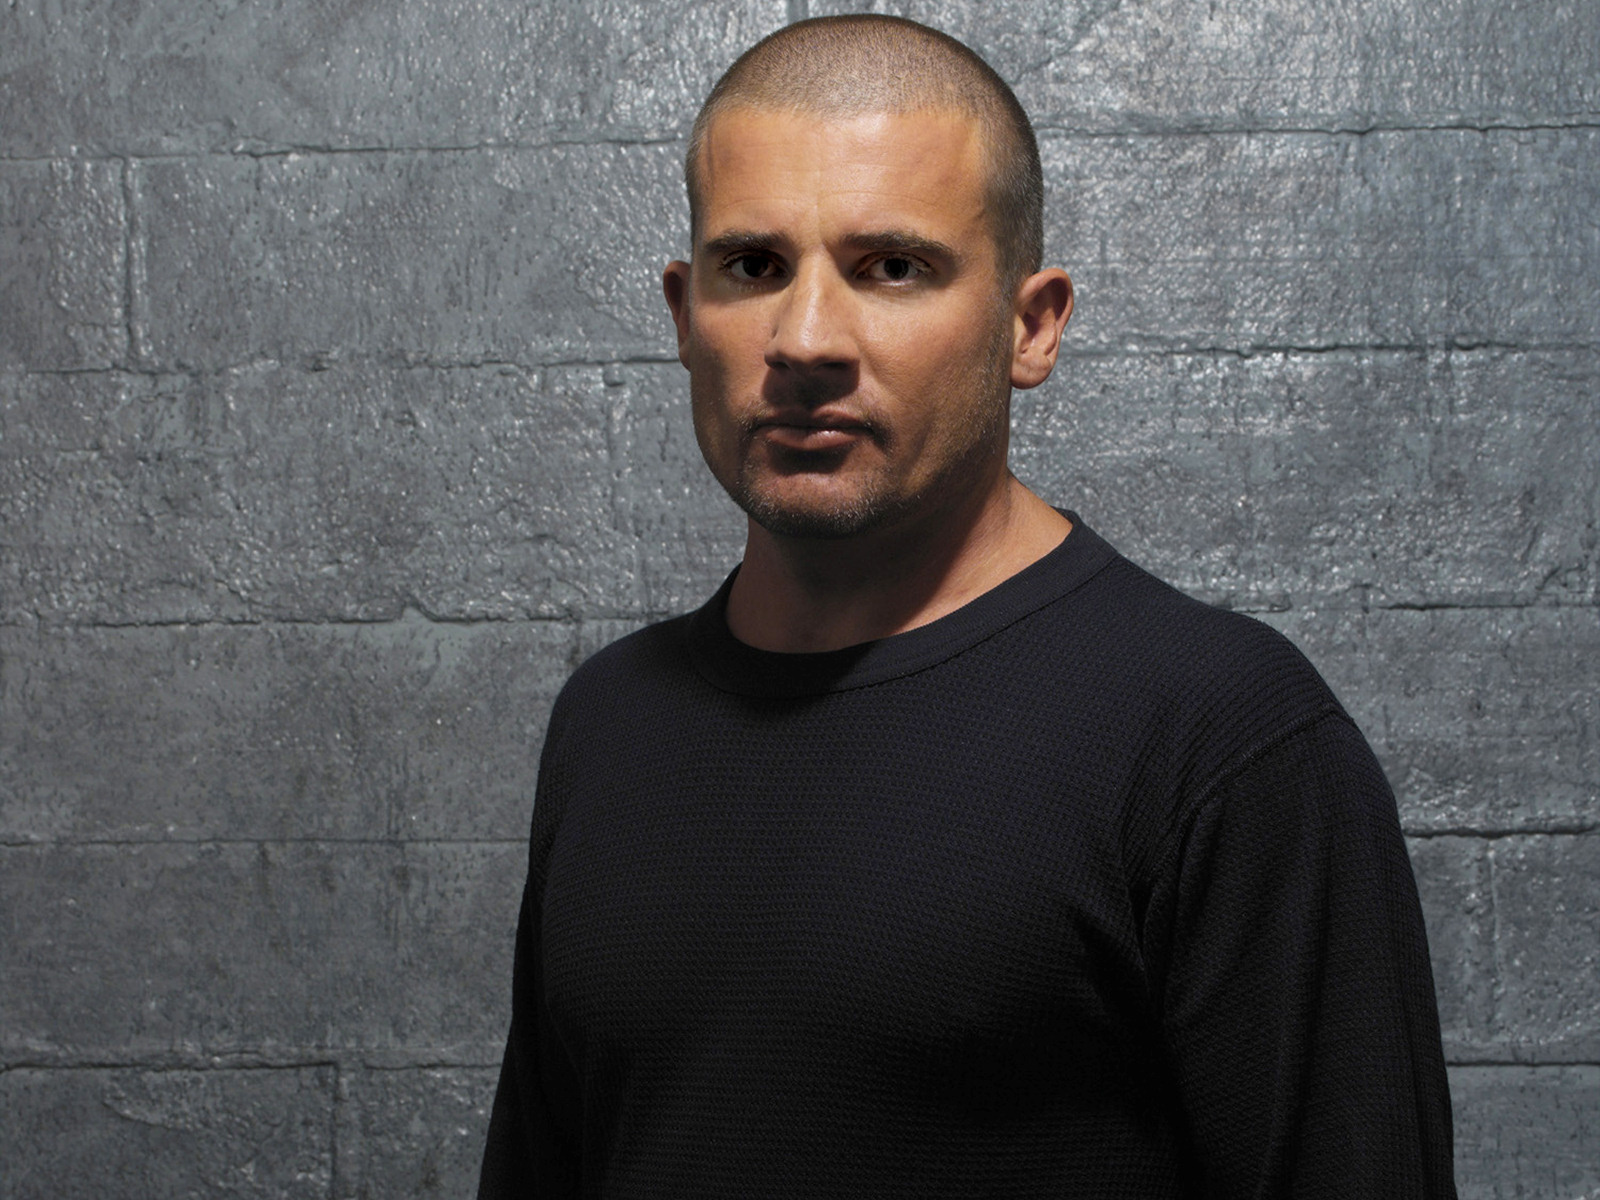 Dominic_Purcell_06_1600x1200.jpg